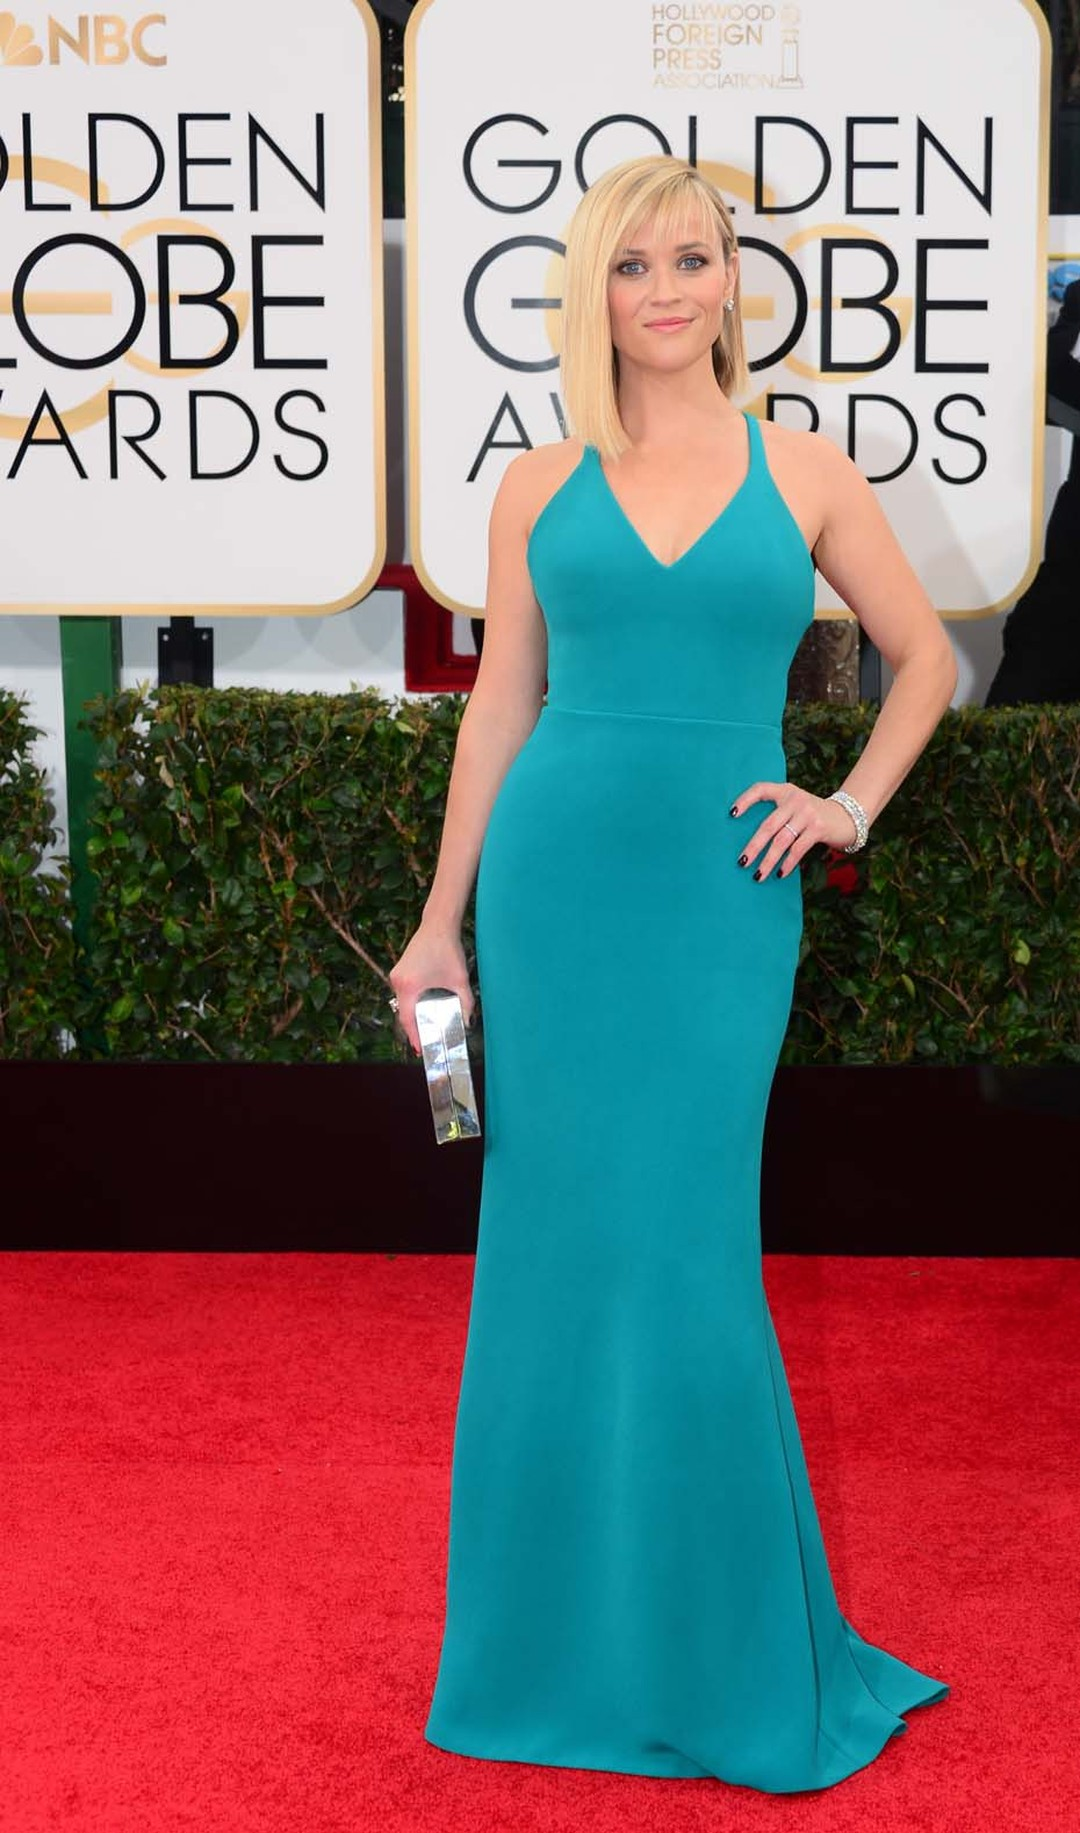 Golden Globes 2014 presenter Reese Witherspoon in figure-hugging turquoise dress and jewels by Harry Winston: a 10ct emerald-cut diamond ring, three stacked Diamond Line bracelets, and diamond ear studs